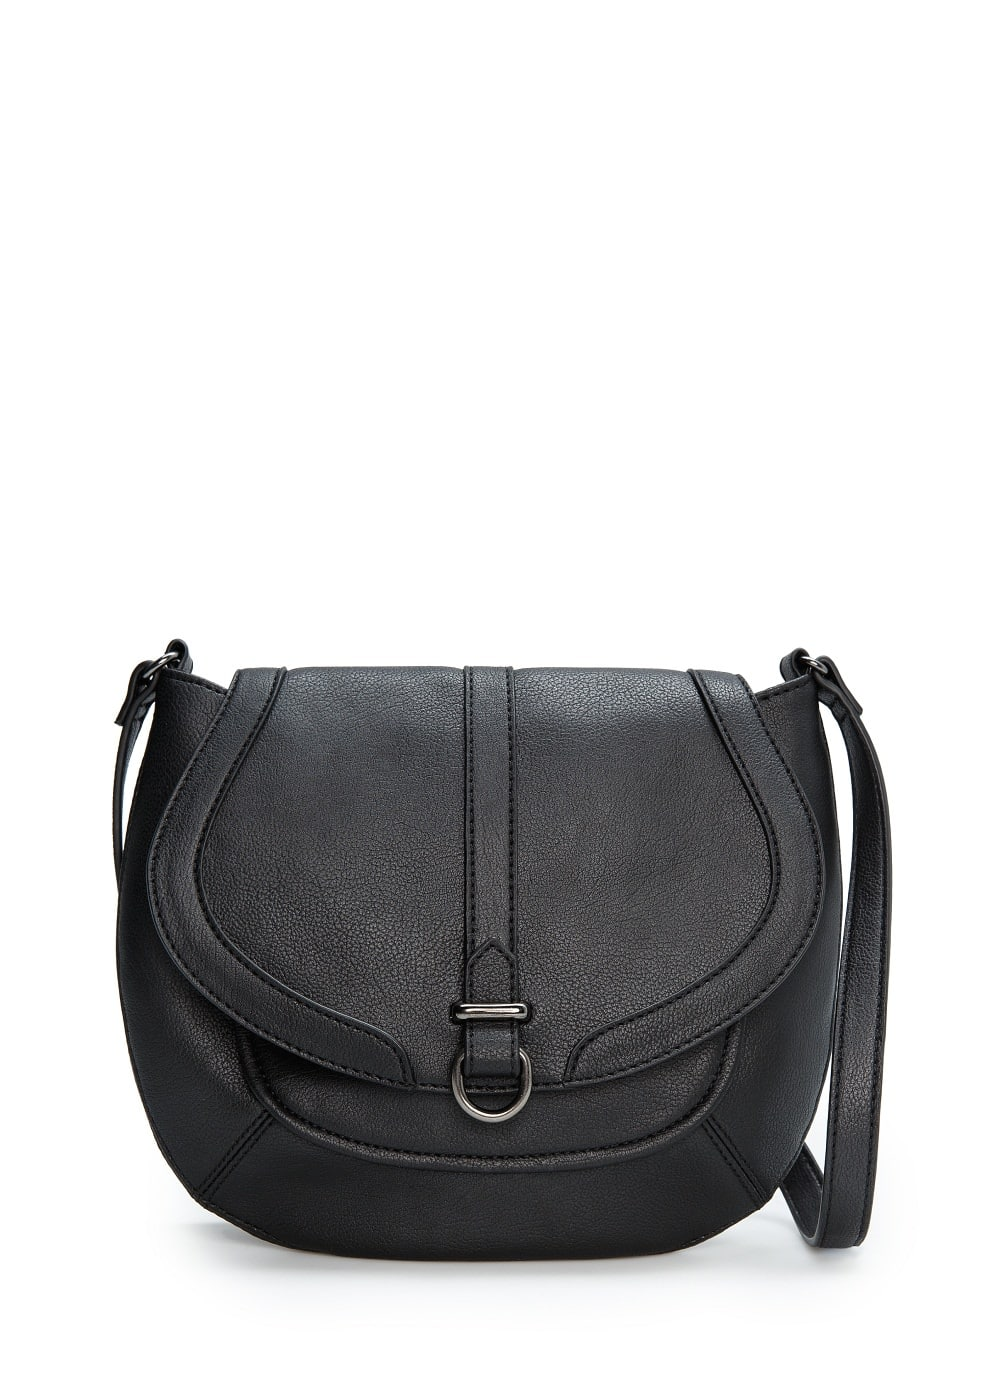 Cross body flap bag